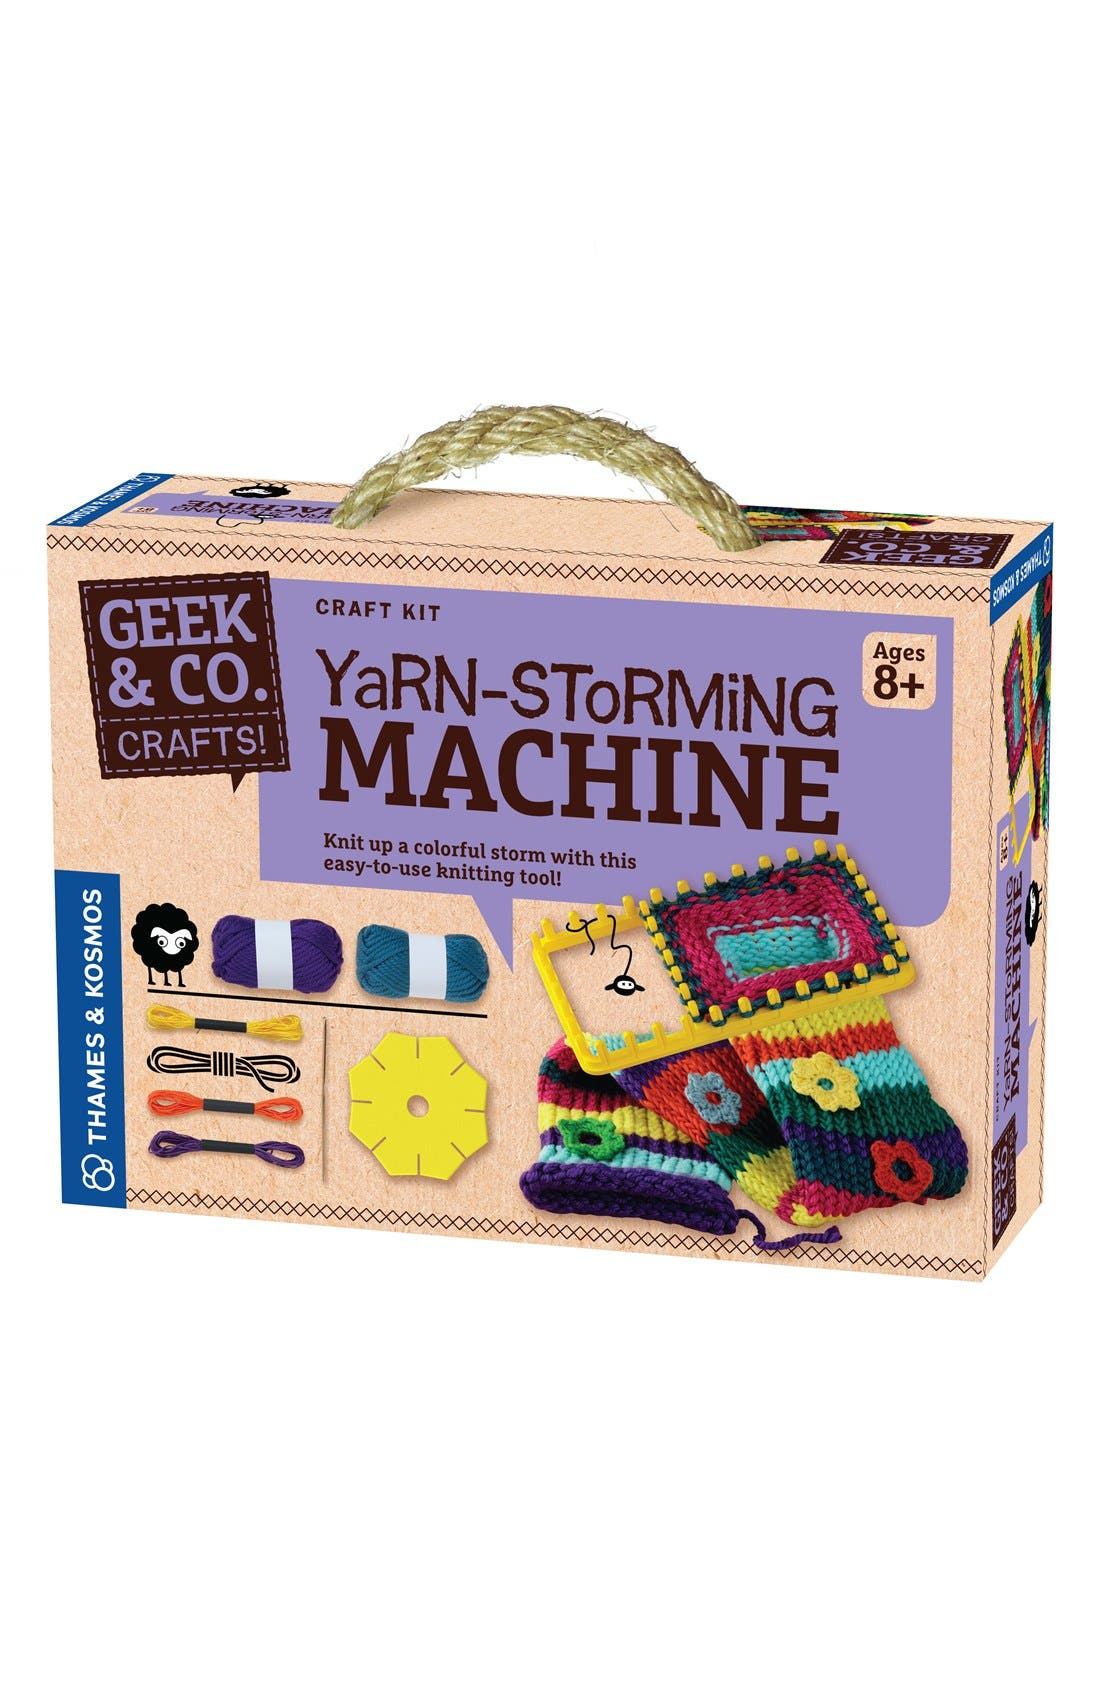 Thames & Kosmos 'Yarn-Storming Machine' Craft Kit